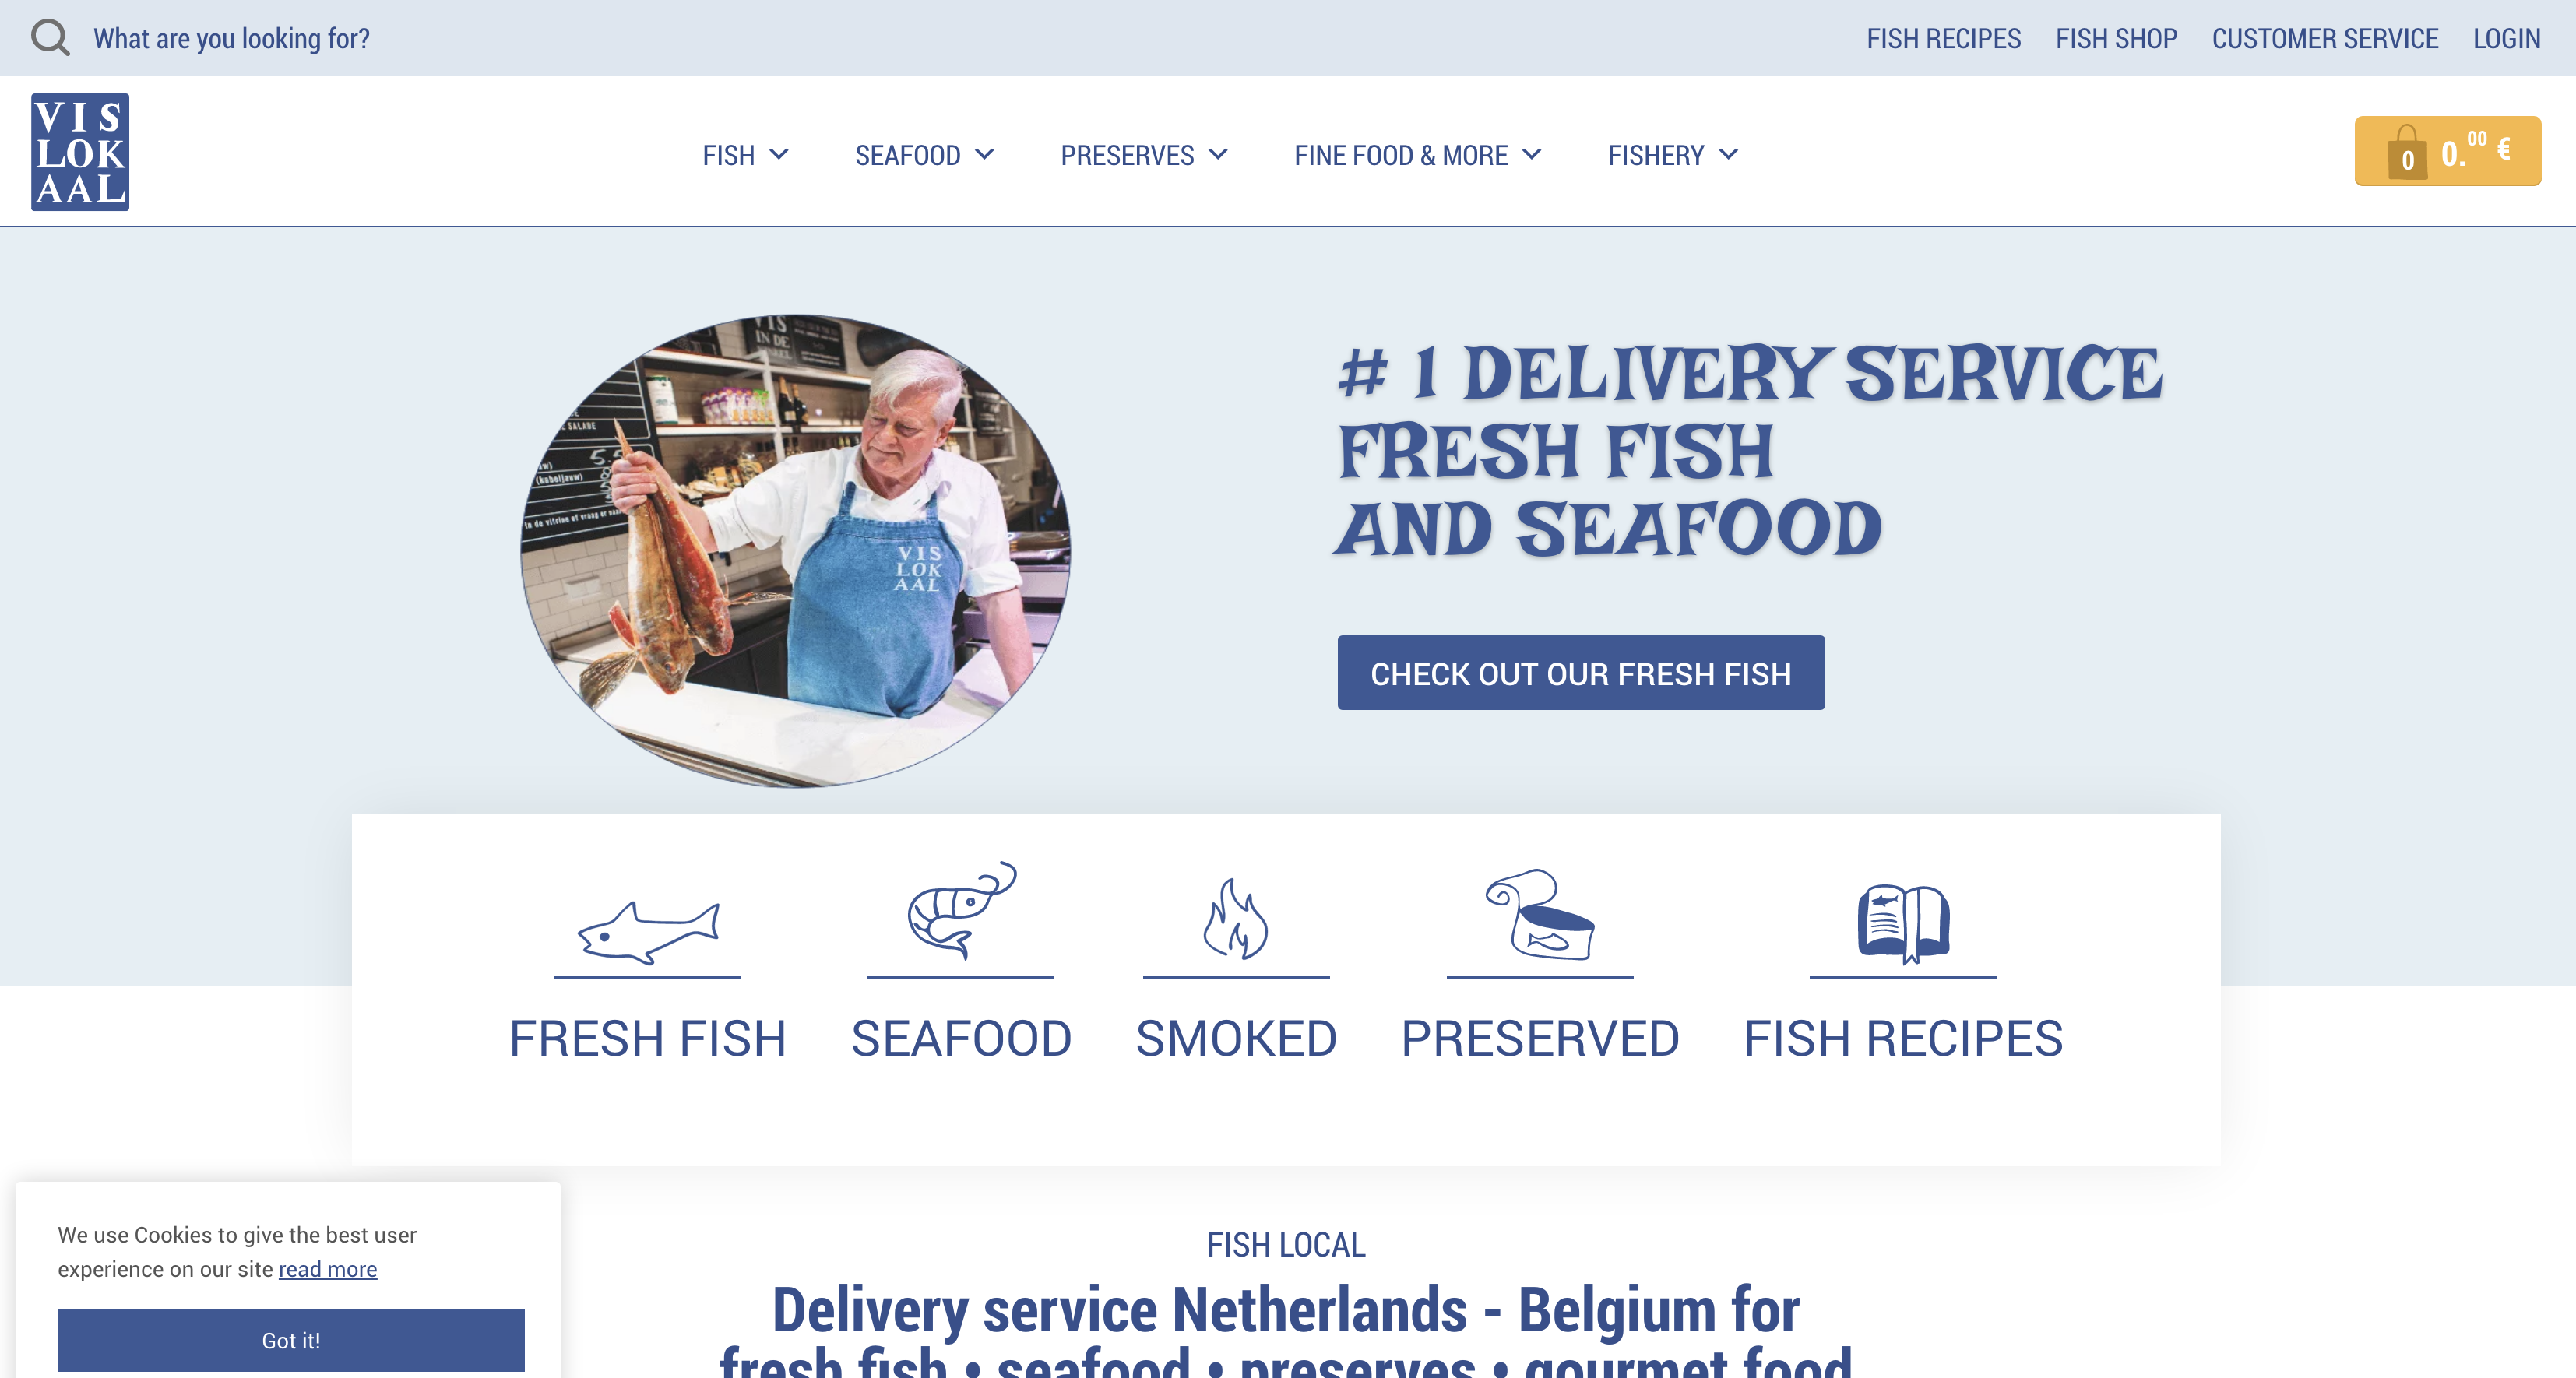 E-Commerce Seafood Delivery